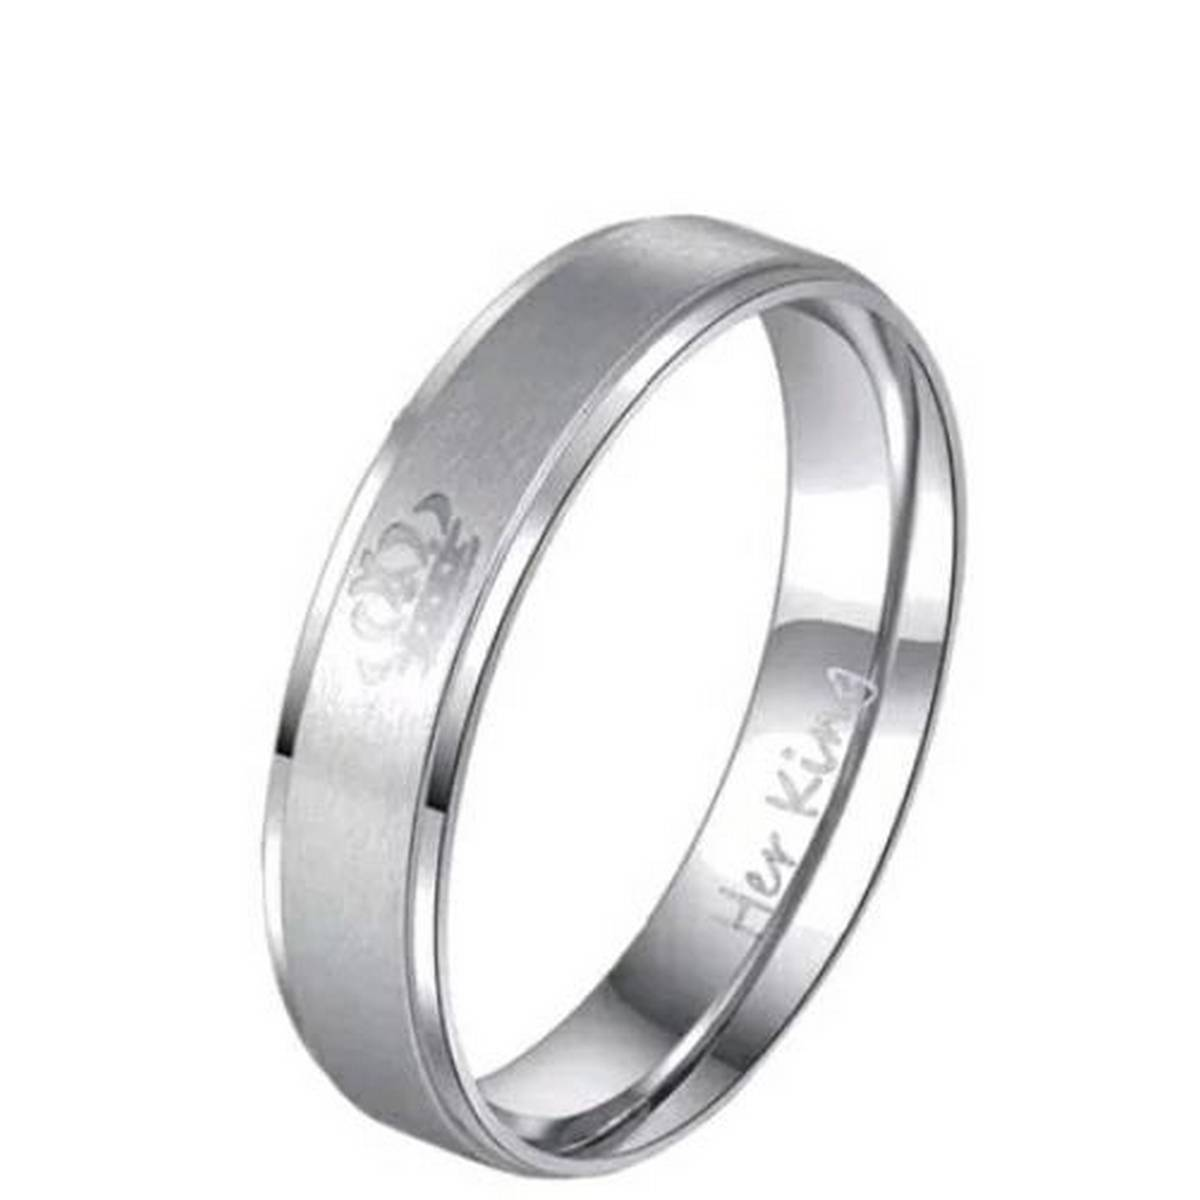 Titanium Steel Wedding Lover's Rings With Letter Pattern Fashion Anniversary Engagement Gifts